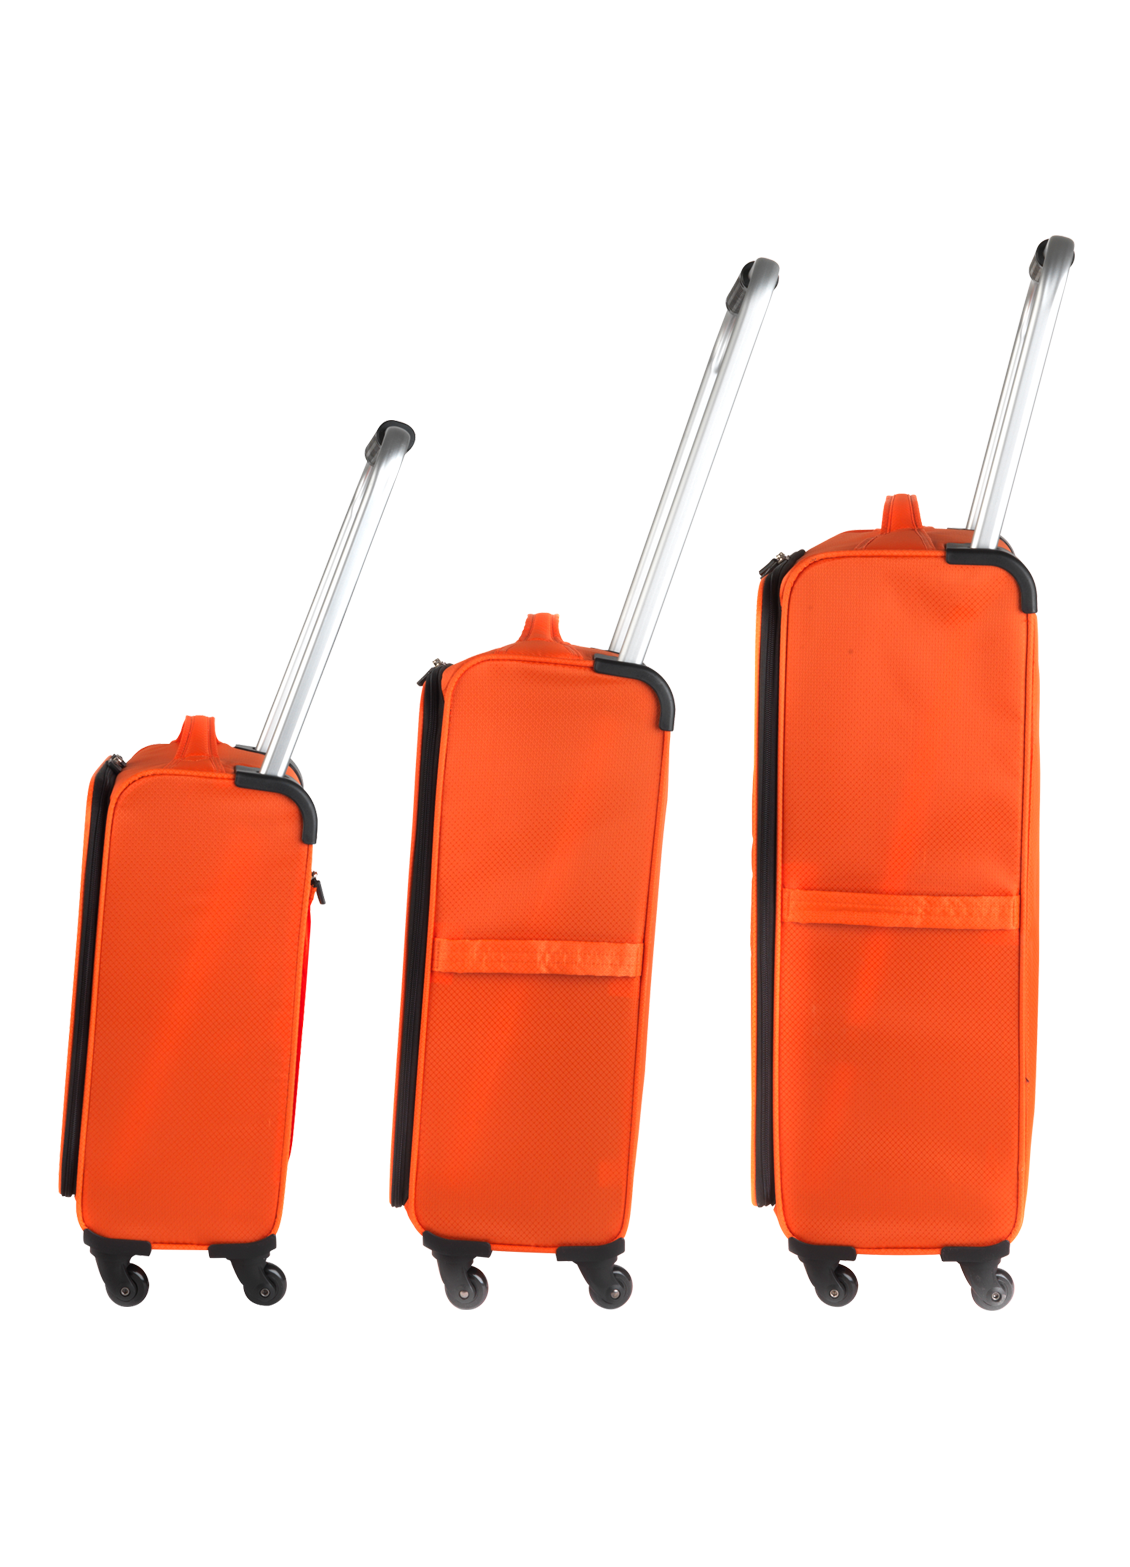 ZFrame 3 Piece Orange Luggage Suitcase Luggage Case Set , 18\